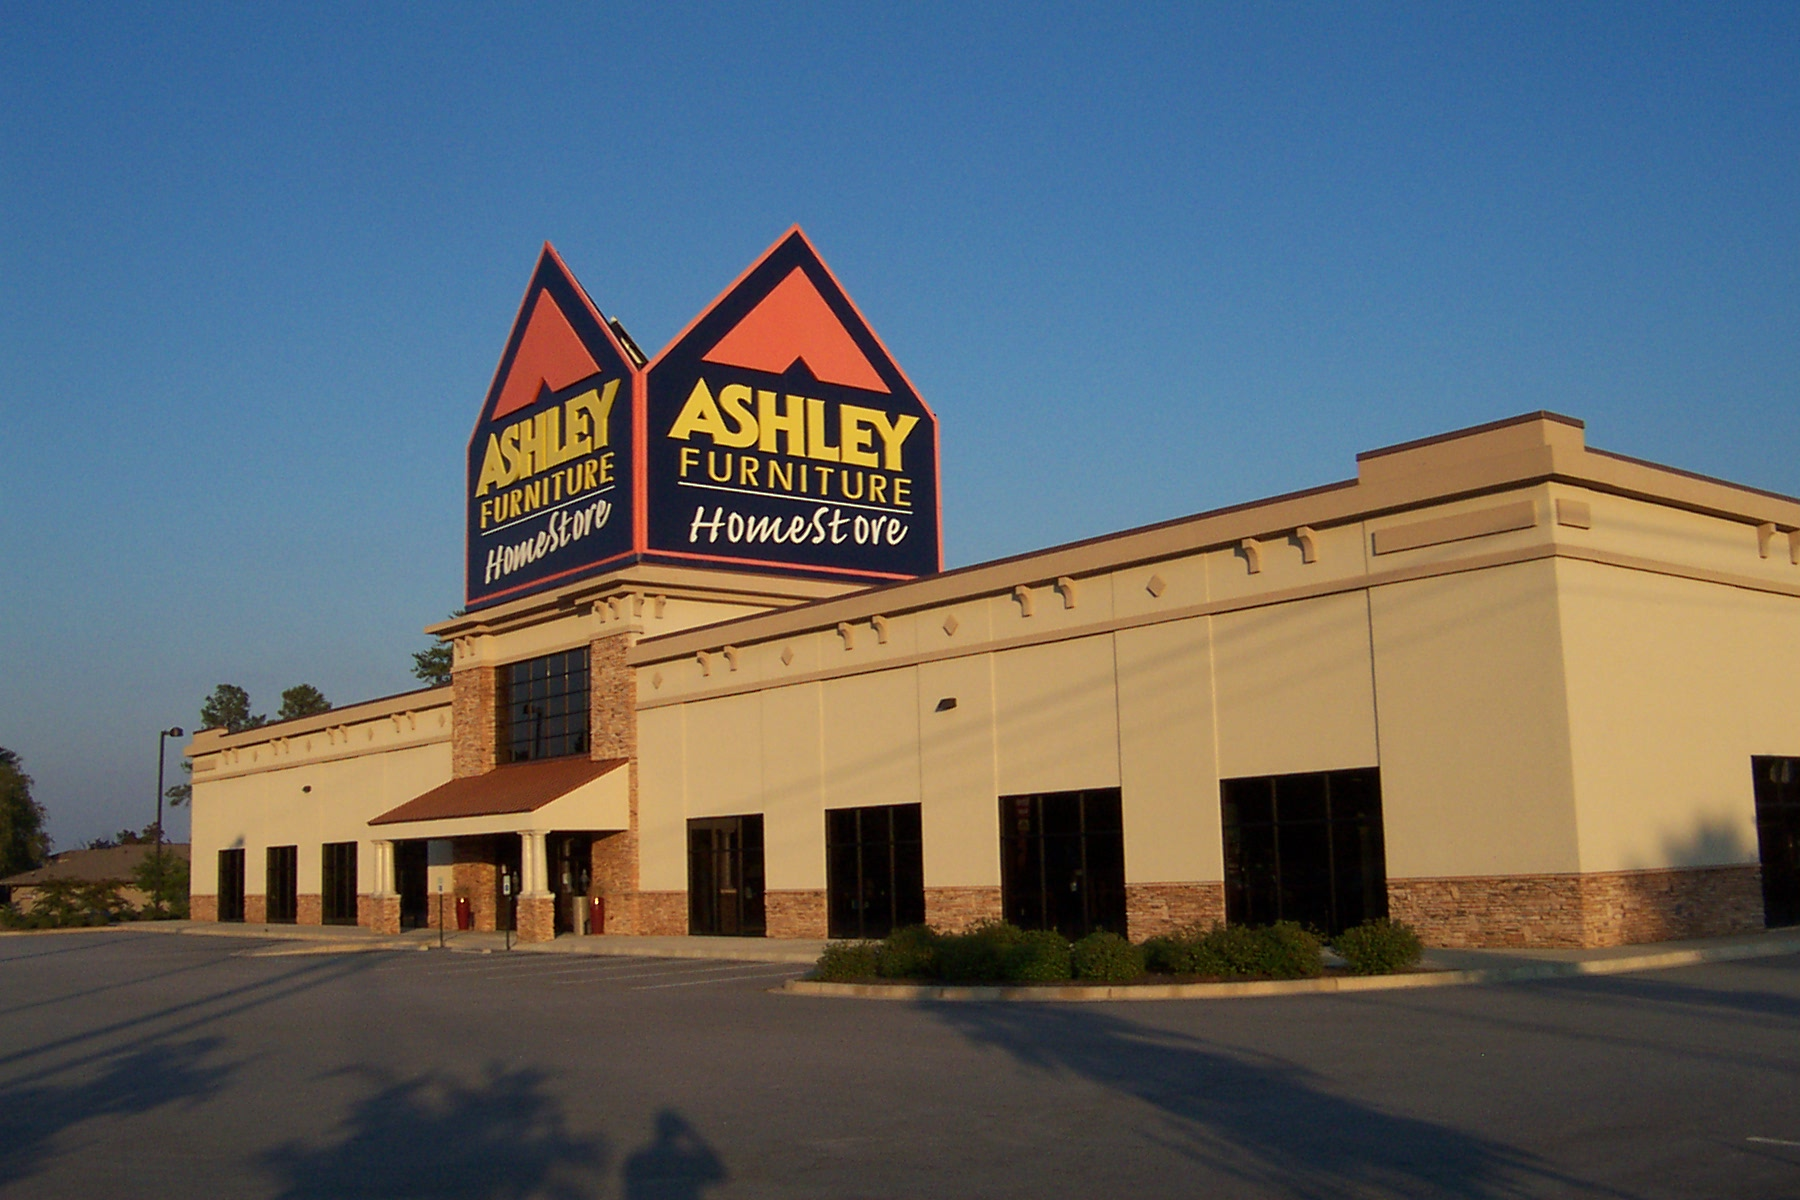 Ashley Furniture Home Store 1800 x 1200